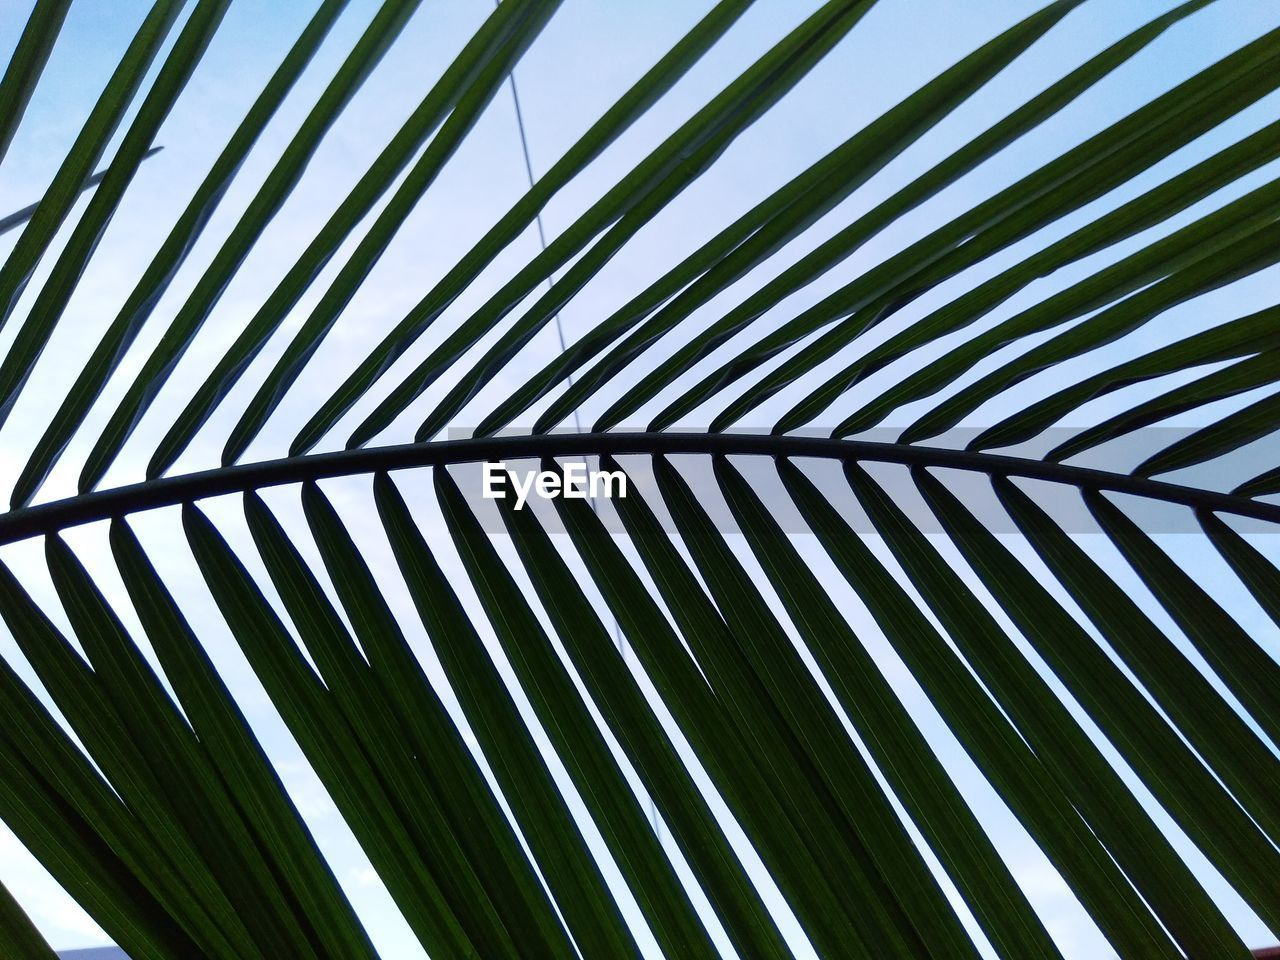 LOW ANGLE VIEW OF PALM LEAF